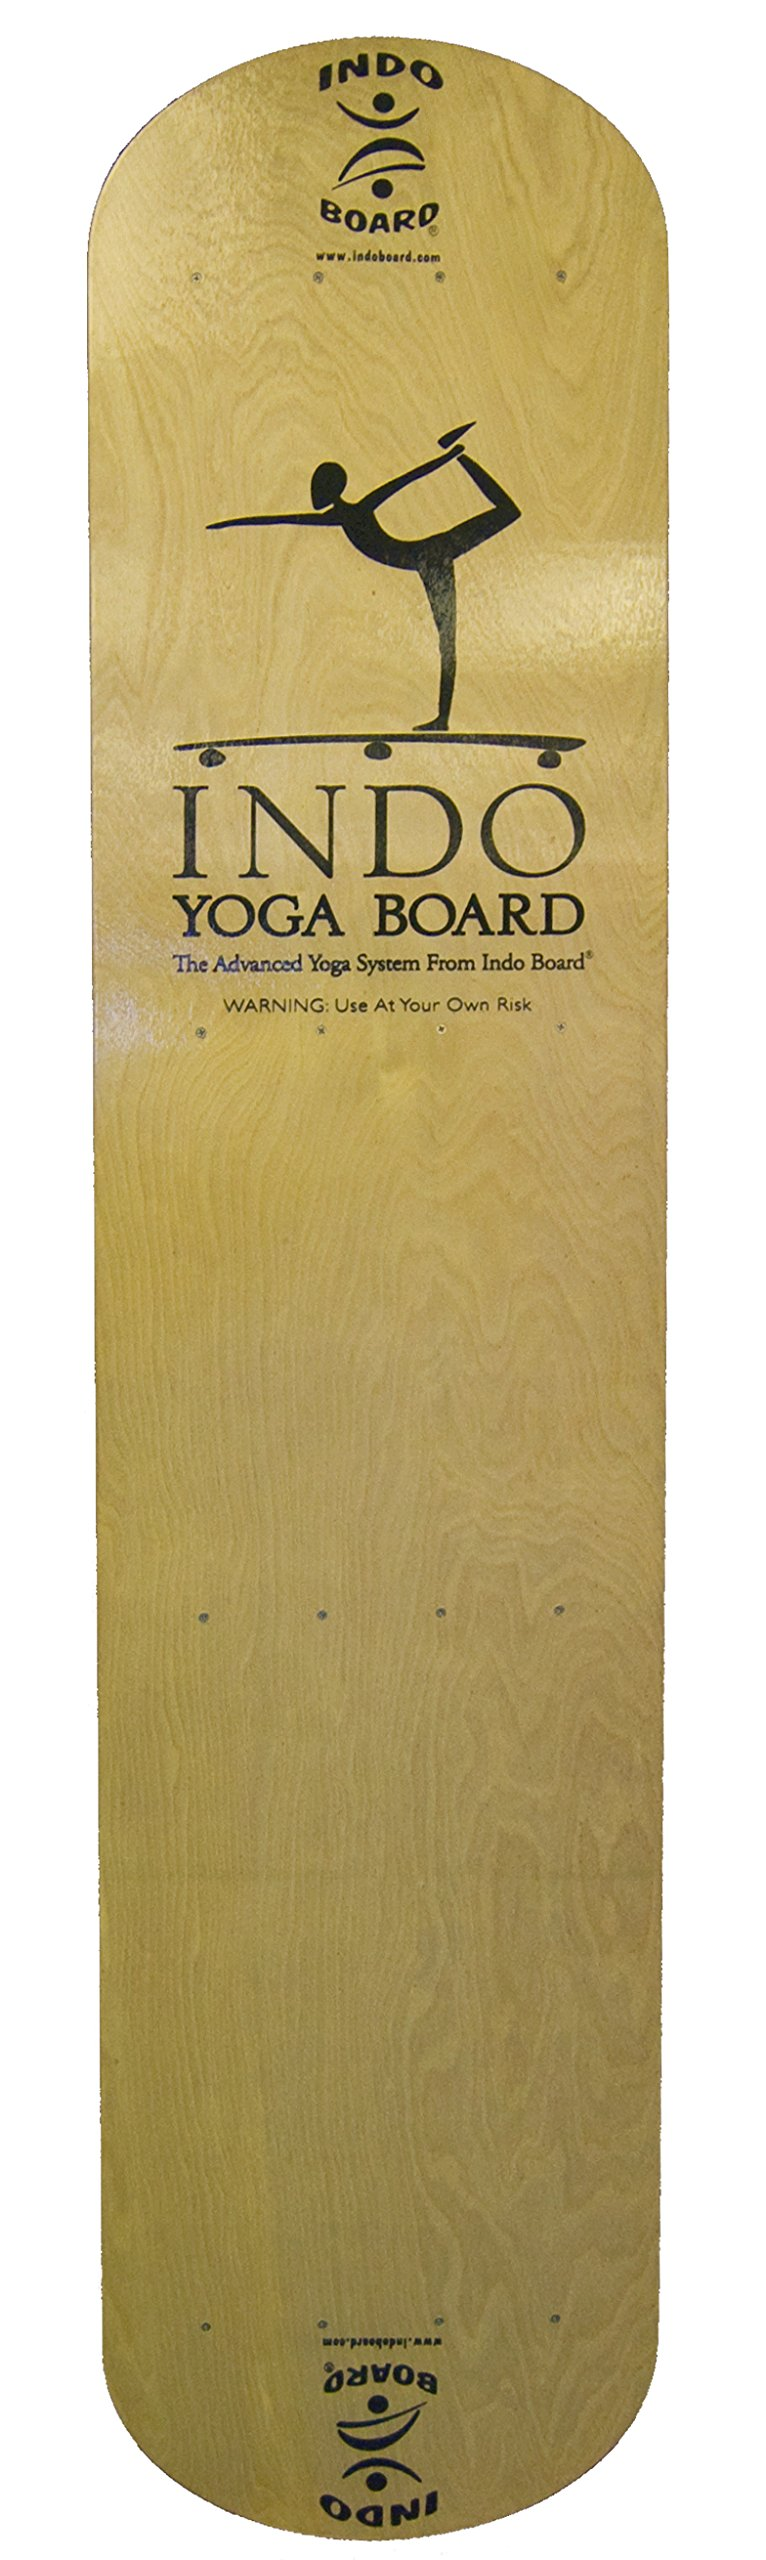 INDO BOARD Yoga Board with Wood Deck - Practice Unstable Yoga Without The Need For a Stand Up Paddleboard or Water. Brings A New Level Of Yoga Into The Studio. Fun and Challenging, Improves Balance